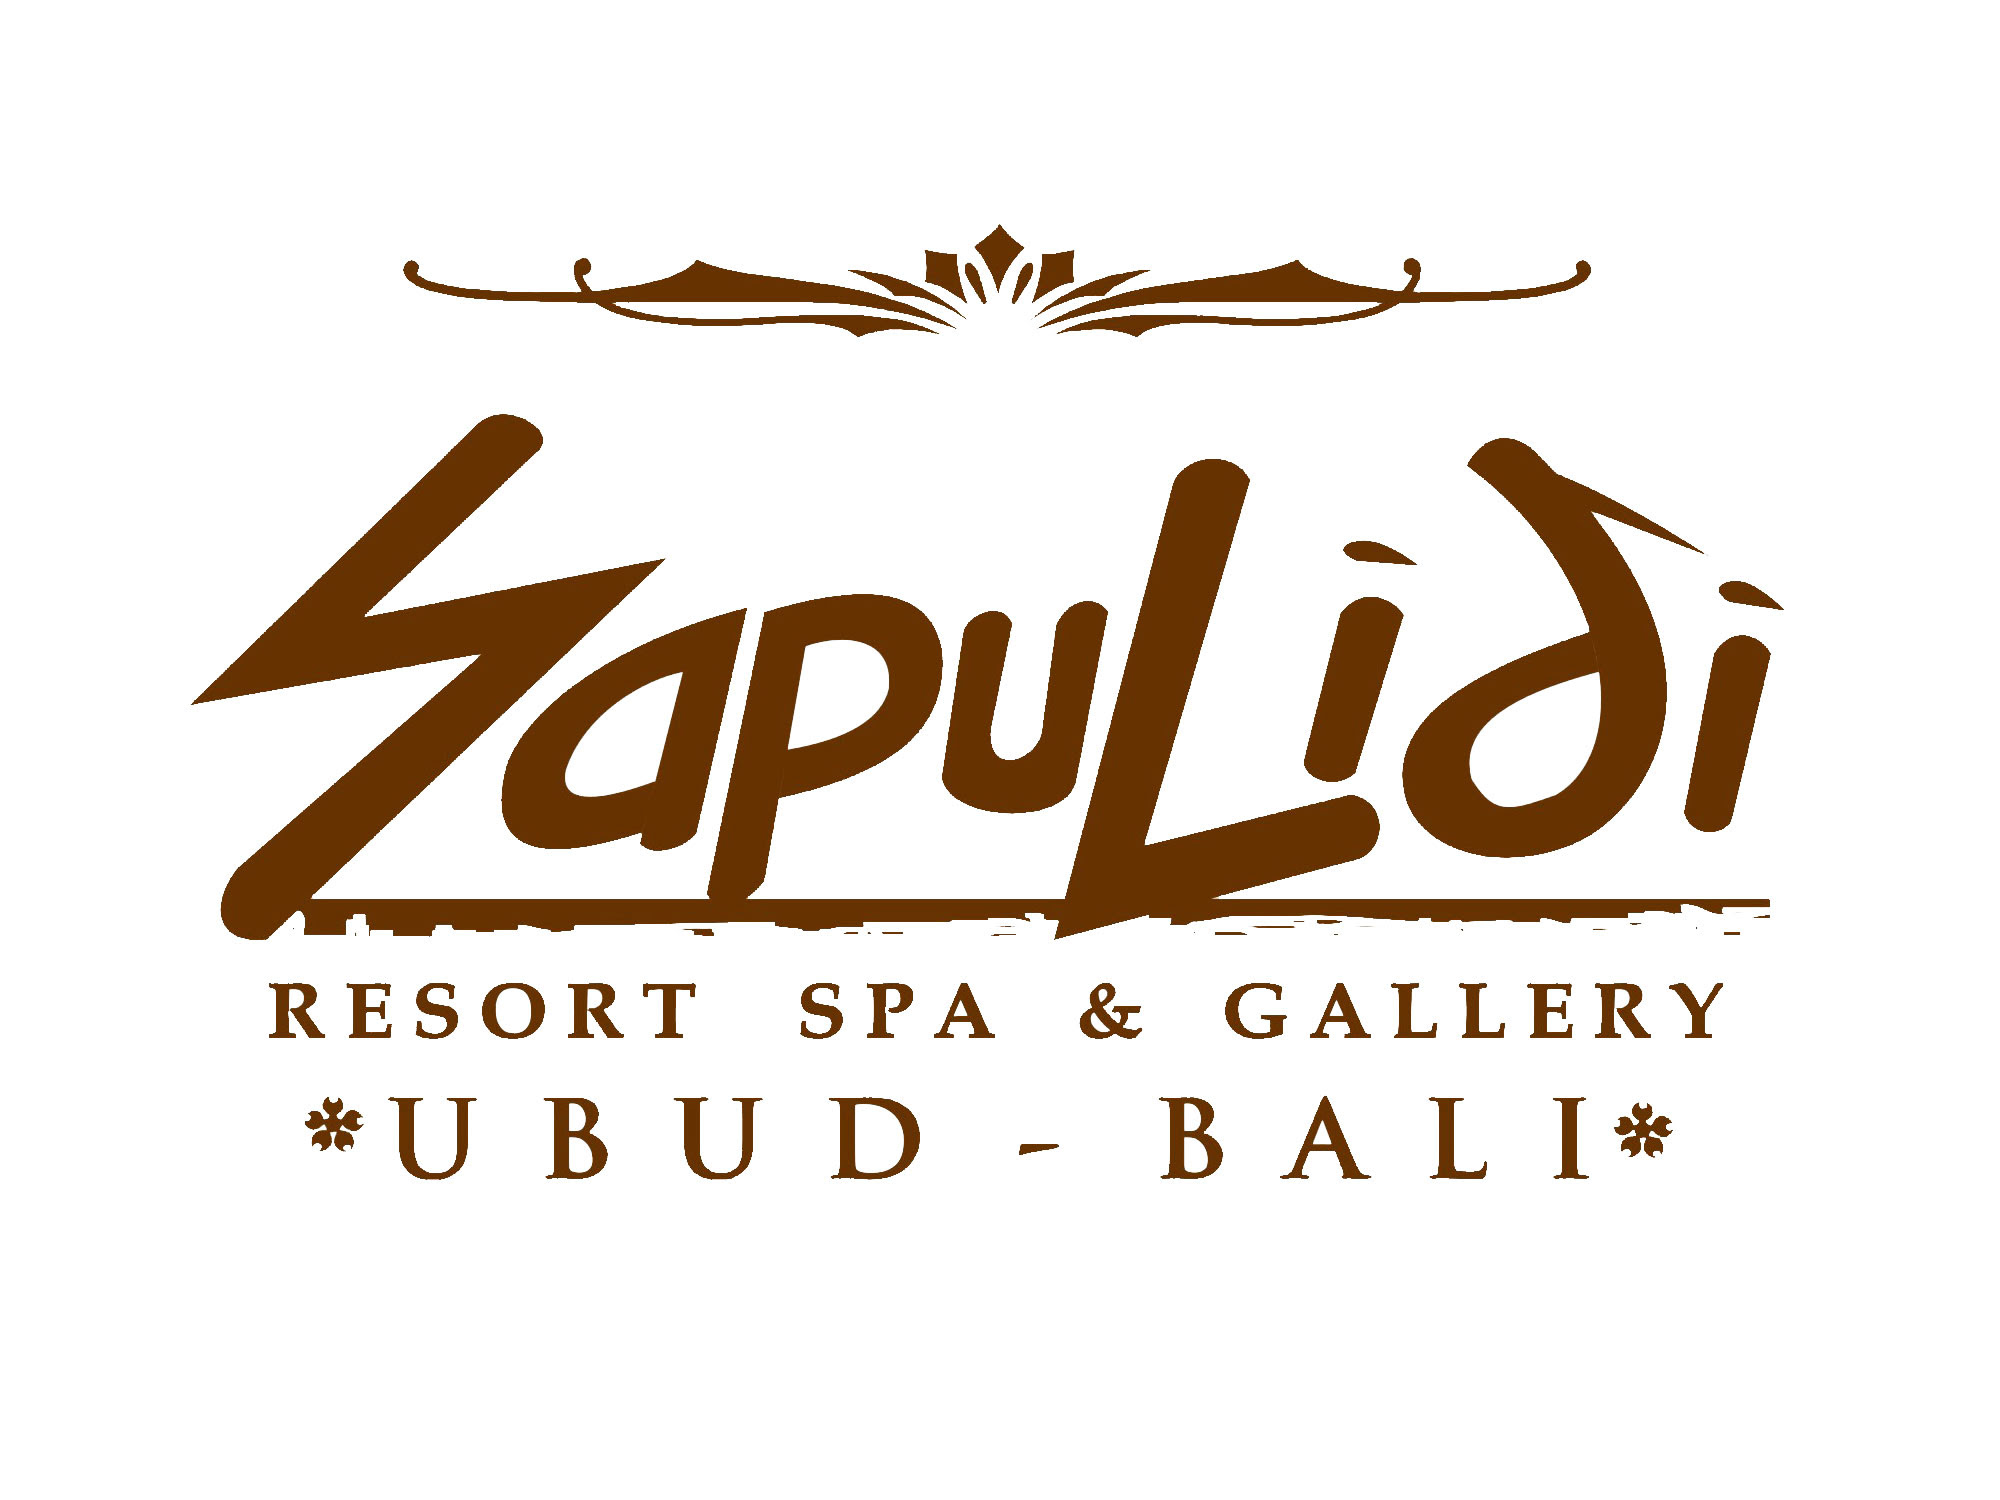 Sapulidi Resort Spa & Gallery